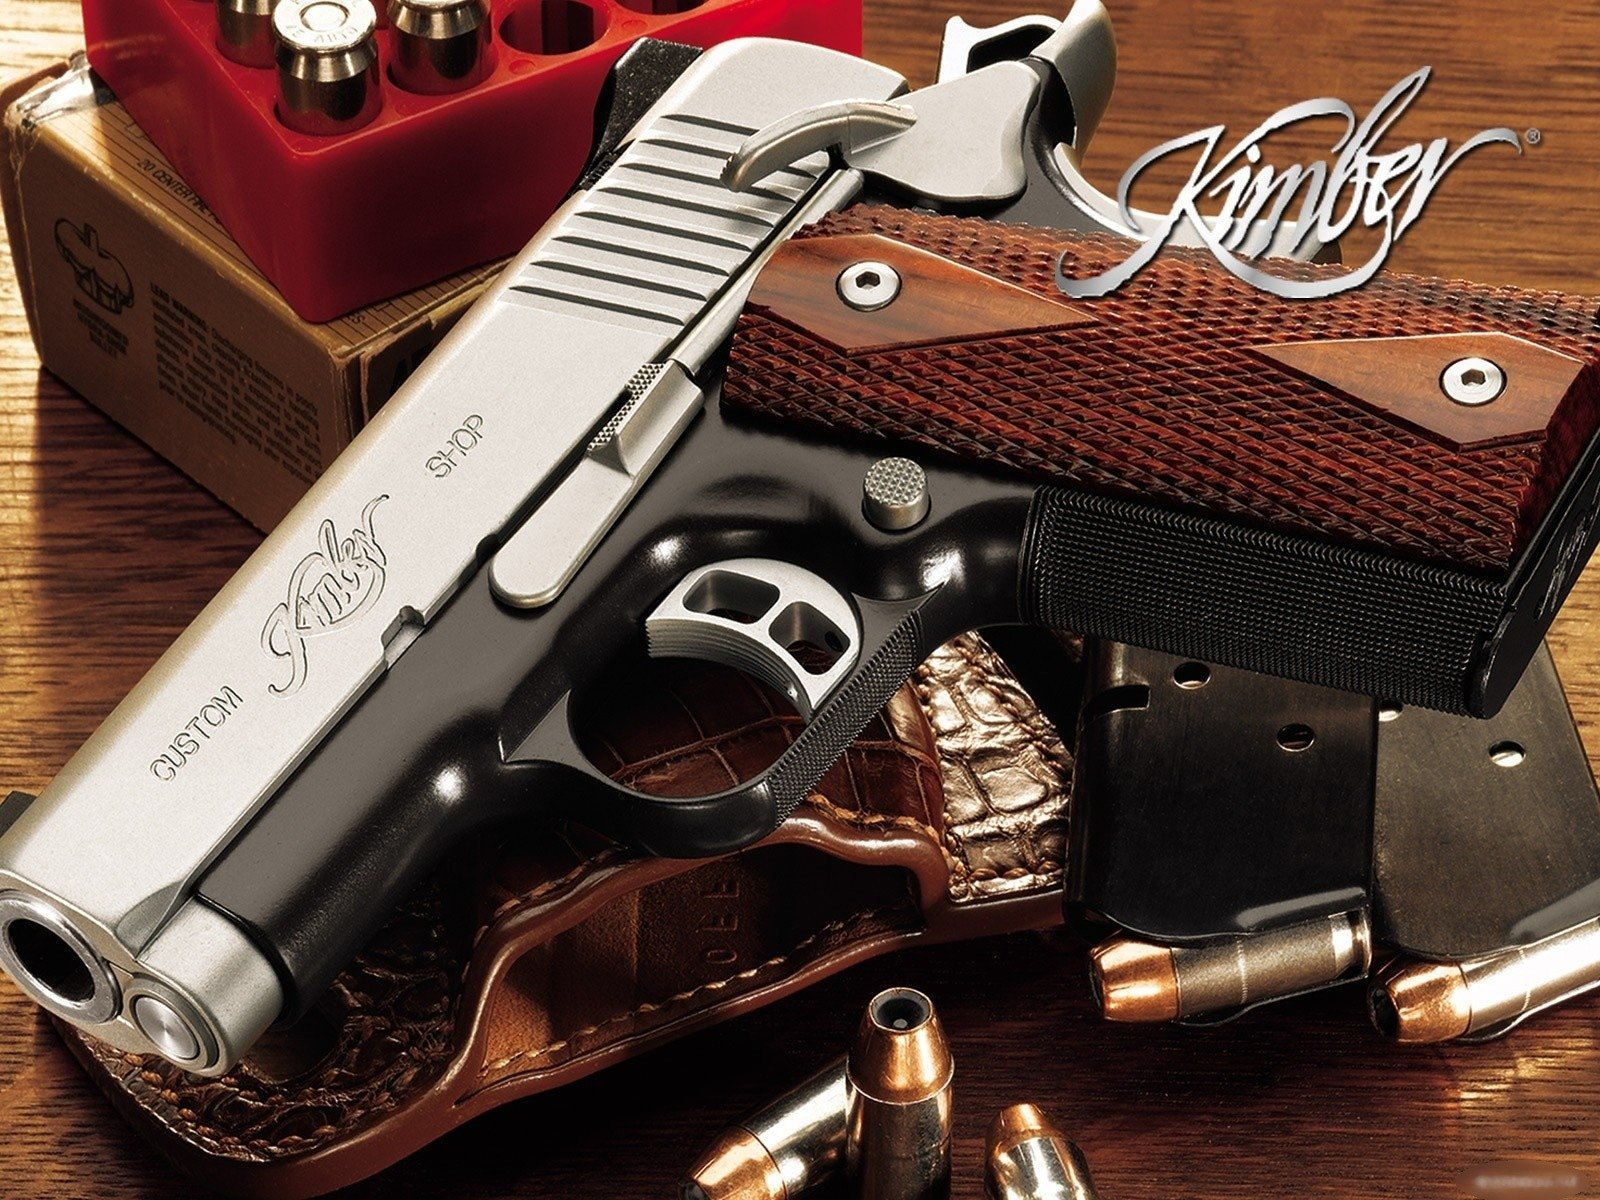 Kimber Pistol High Quality Background on Wallpapers Vista